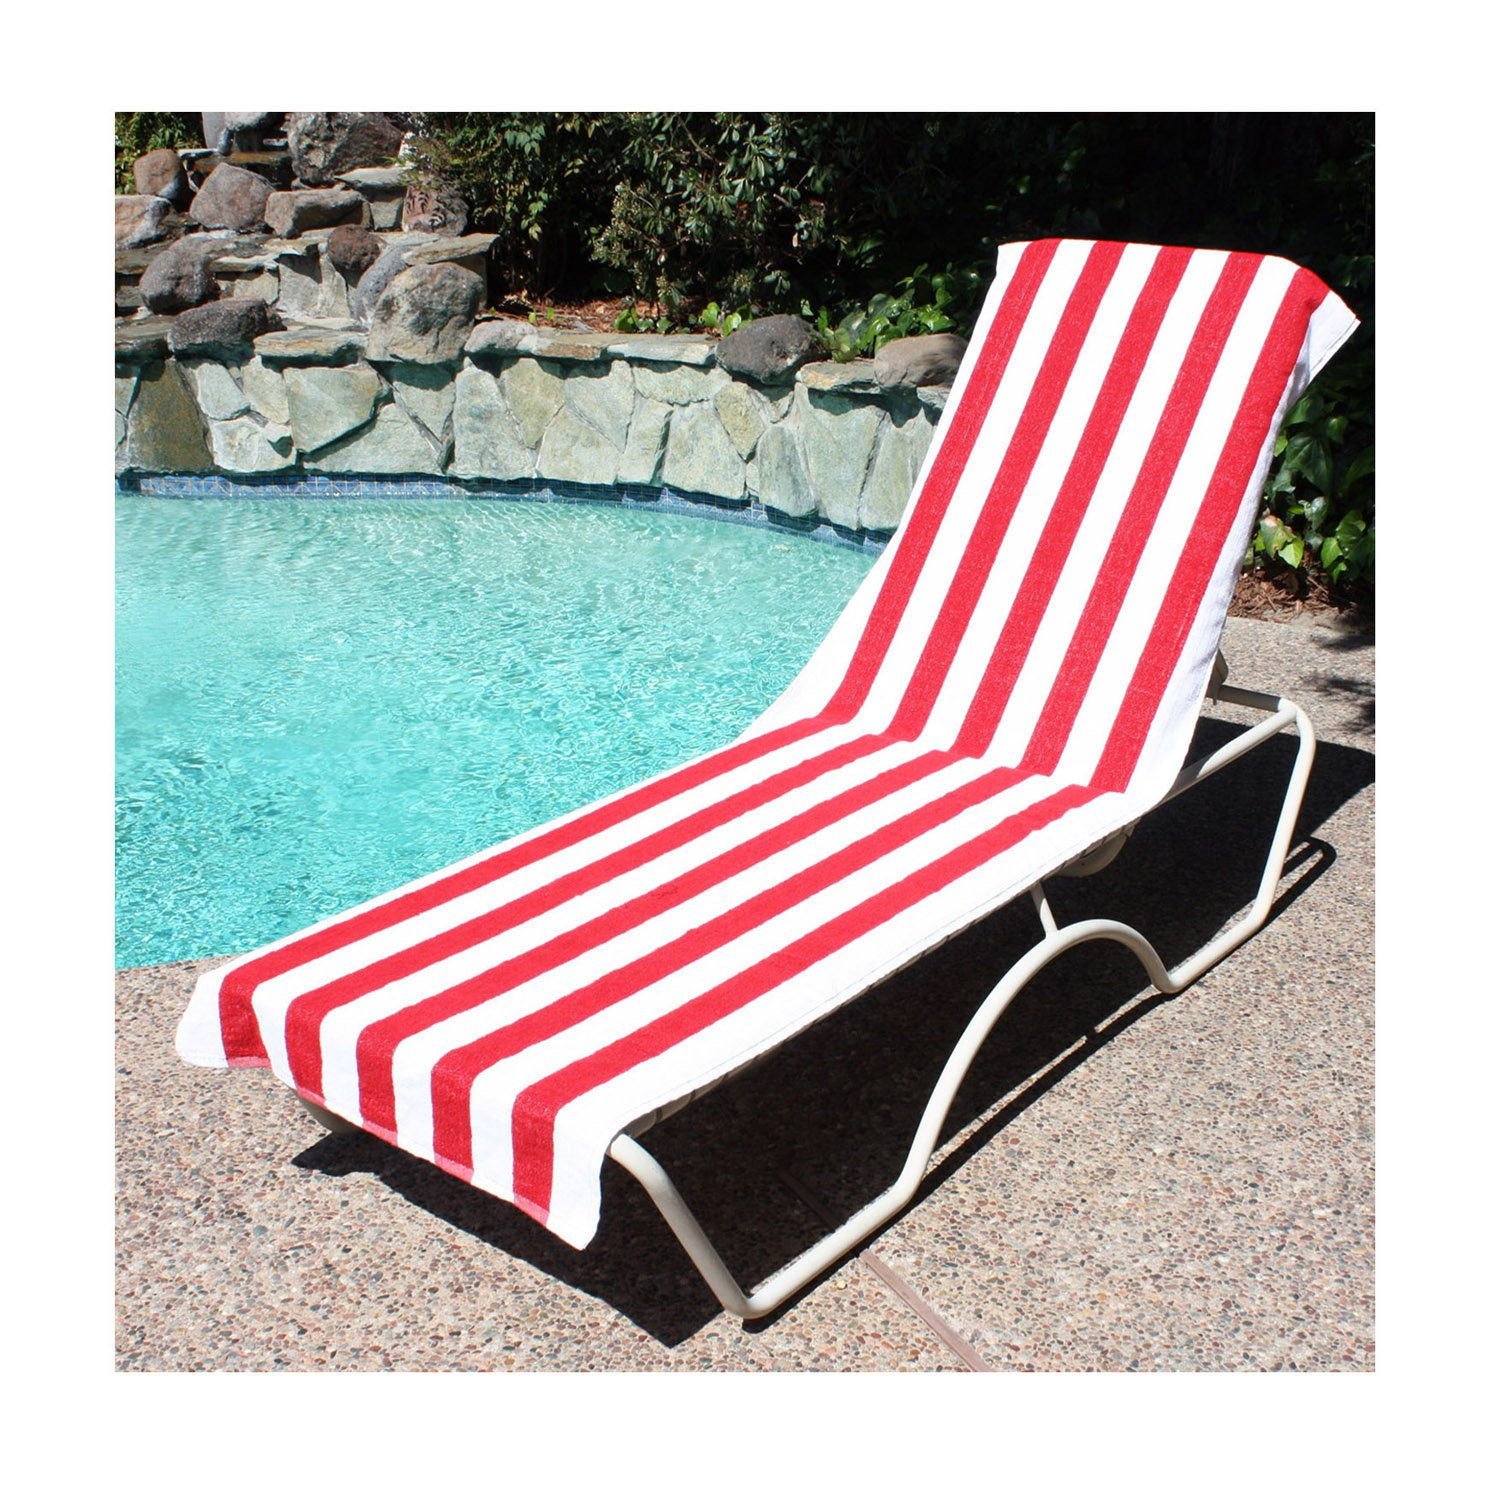 Amazon.com J u0026 M Home Fashions Lounge Chair Beach Towel With Fitted Pocket Top 26 by 82-Inch Red Home u0026 Kitchen  sc 1 st  Amazon.com : chaise lounge towels fitted - Sectionals, Sofas & Couches